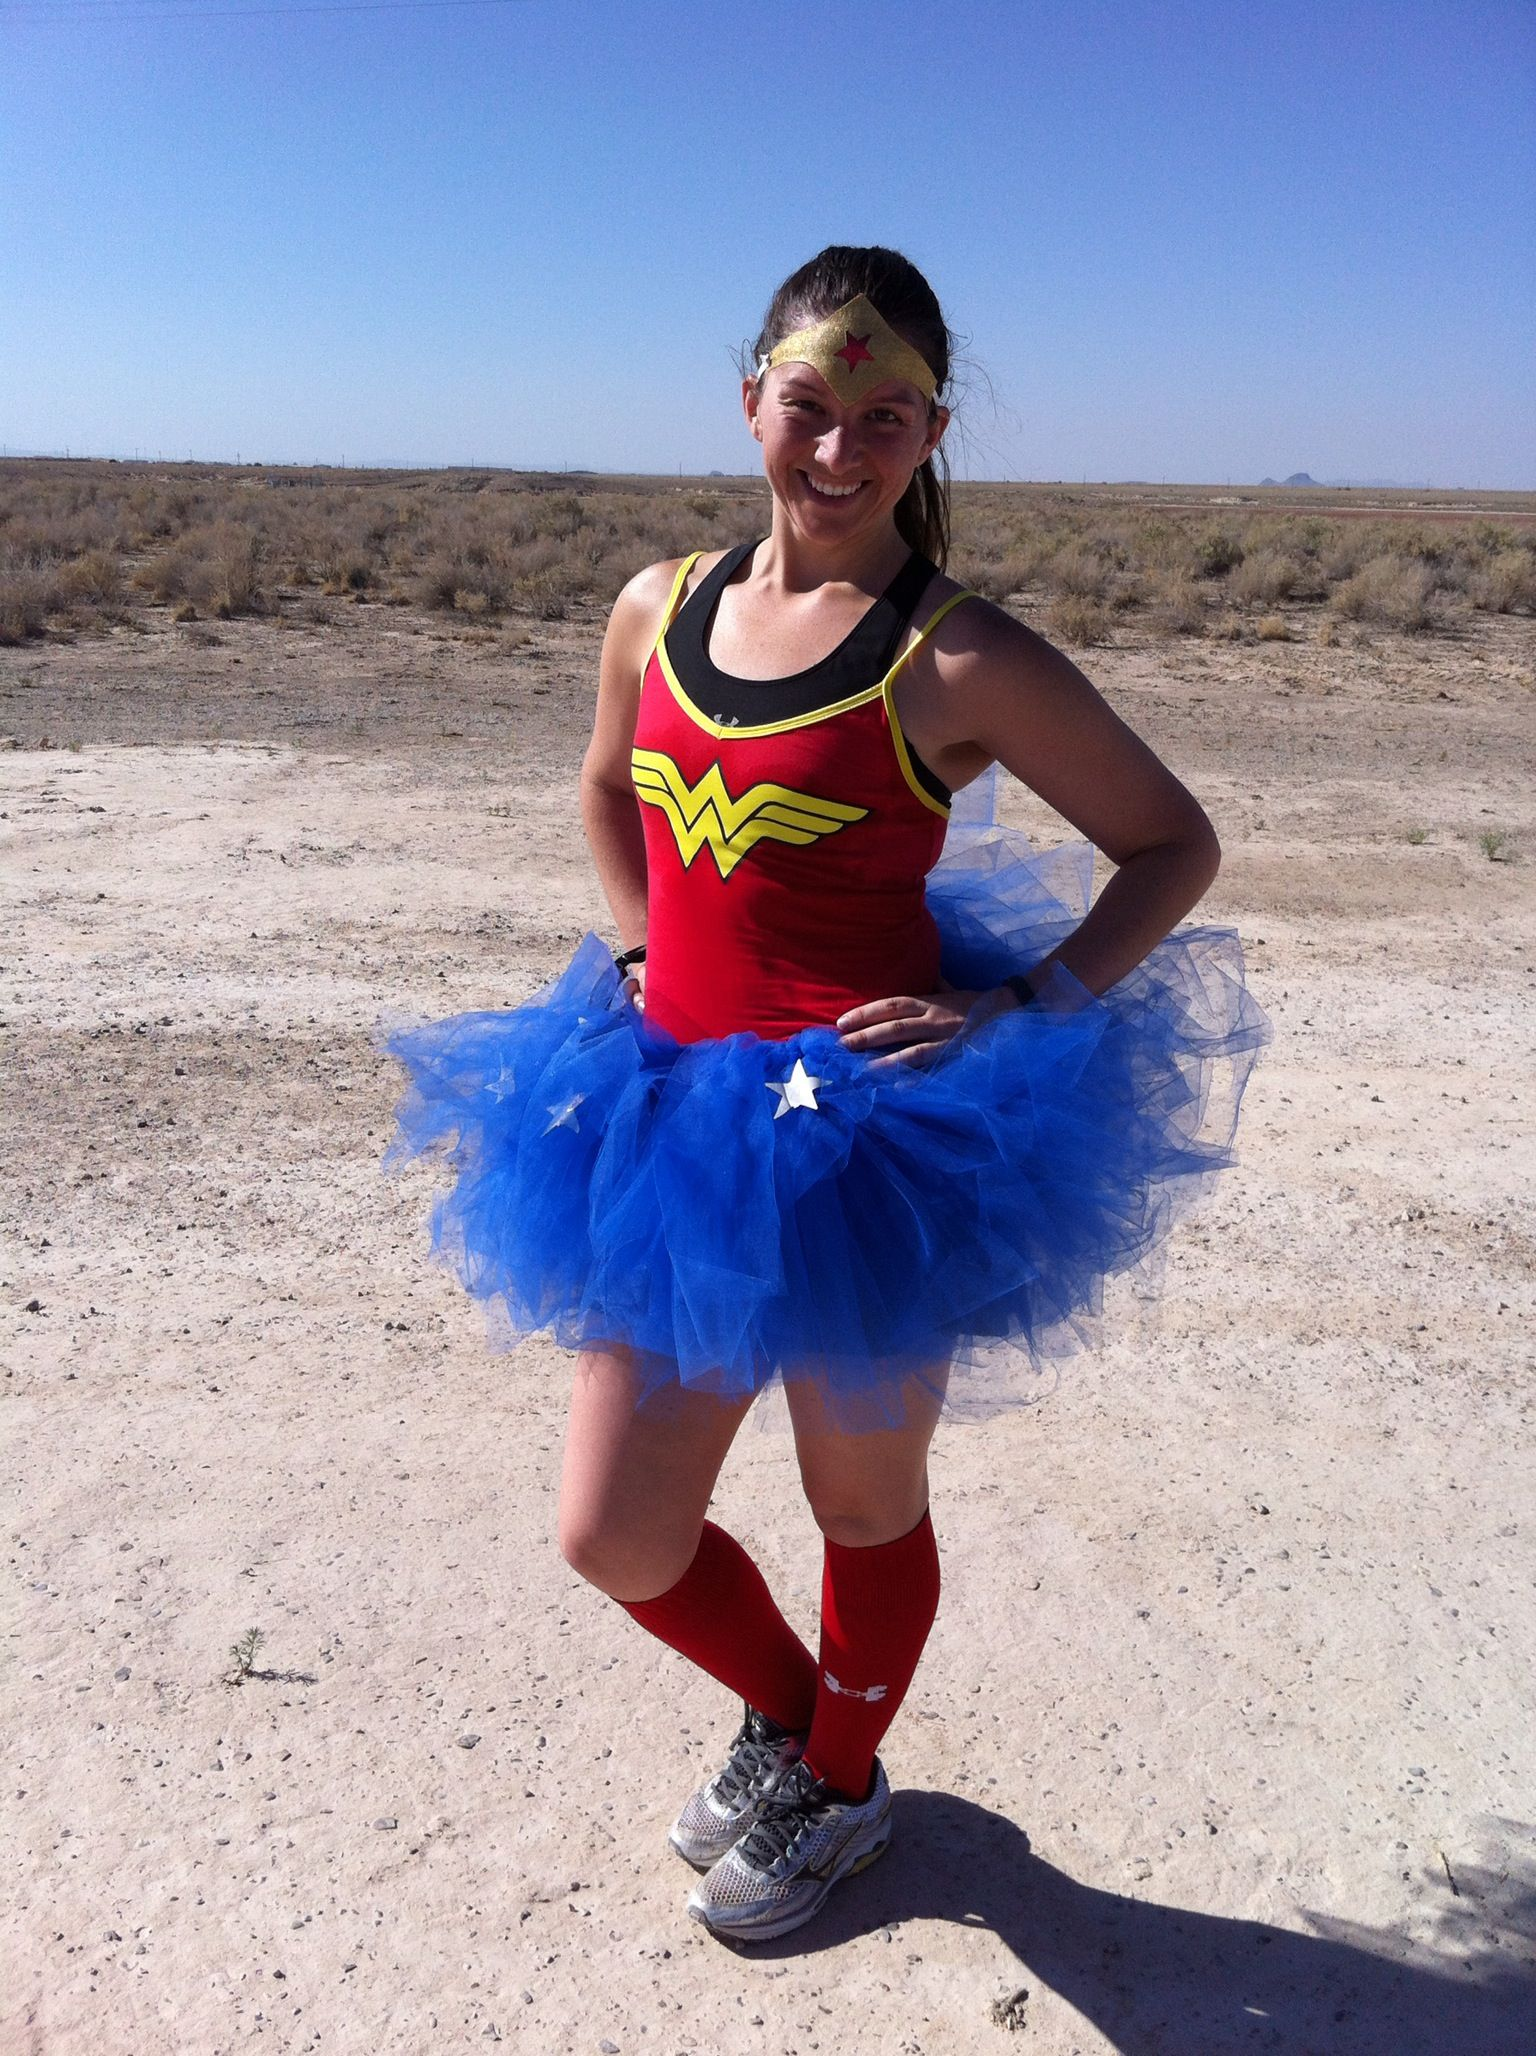 Princess and Wonder Woman running outfits are magical and ... |Disney Running Costumes Ideas Women